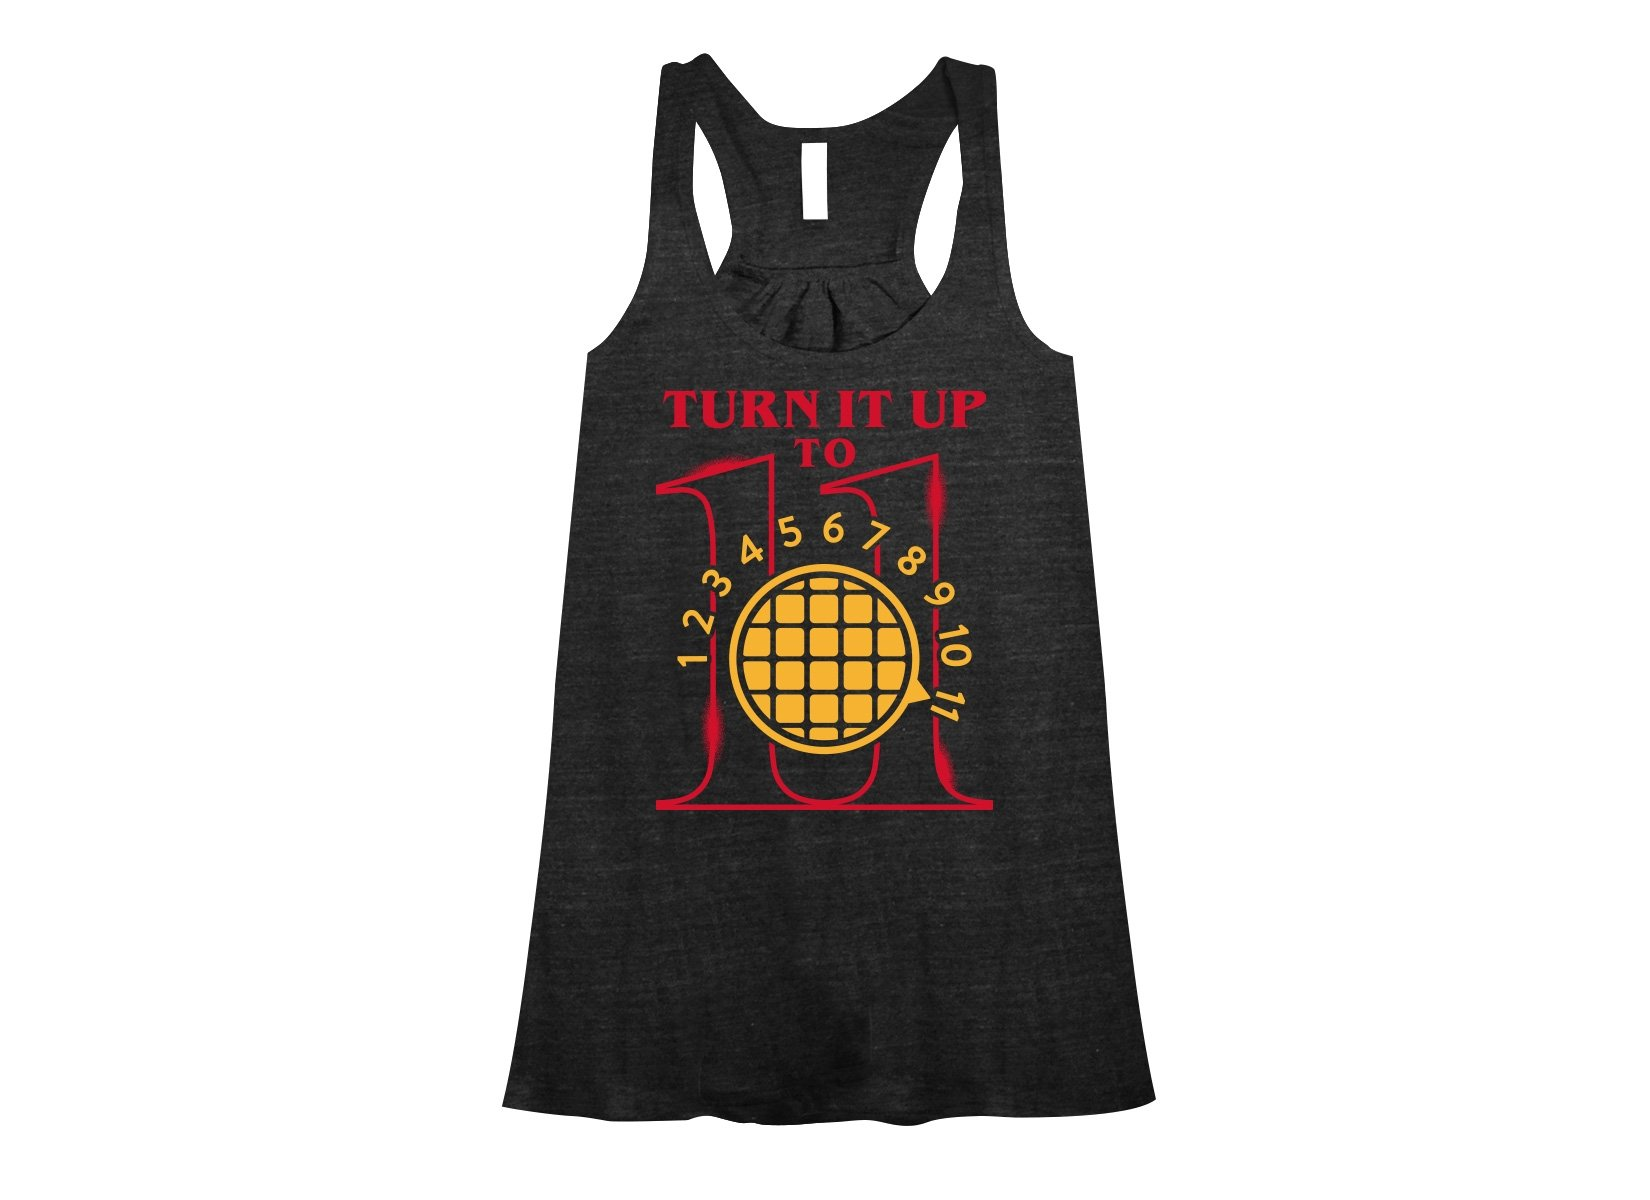 Turn It Up To 11 on Womens Tanks T-Shirt